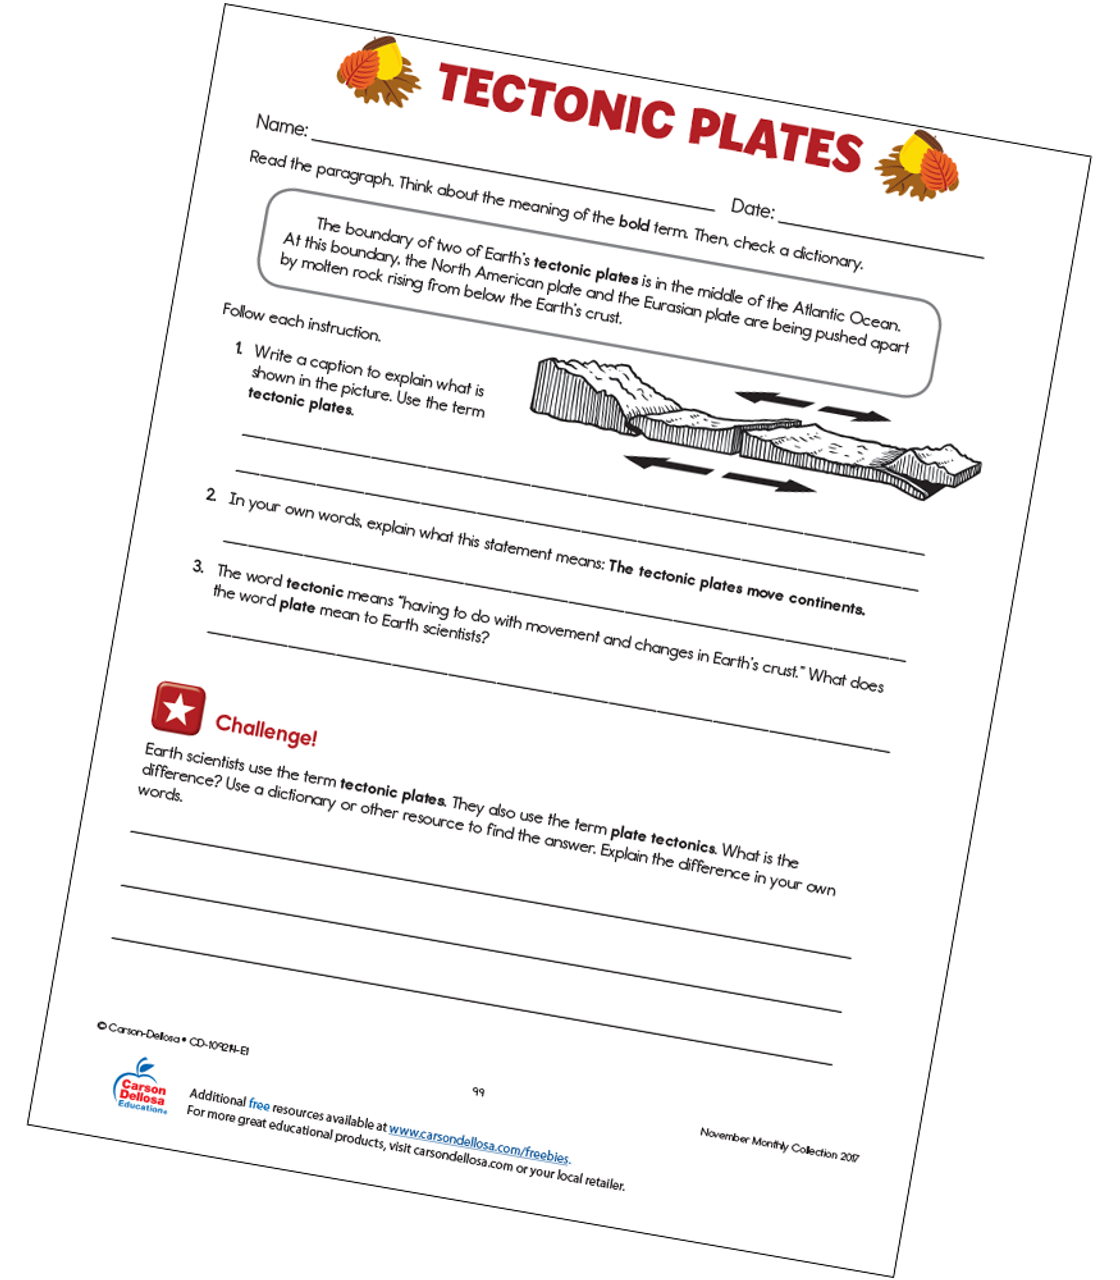 photograph relating to Printable Plates known as Tectonic Plates Free of charge Printable Carson Dellosa